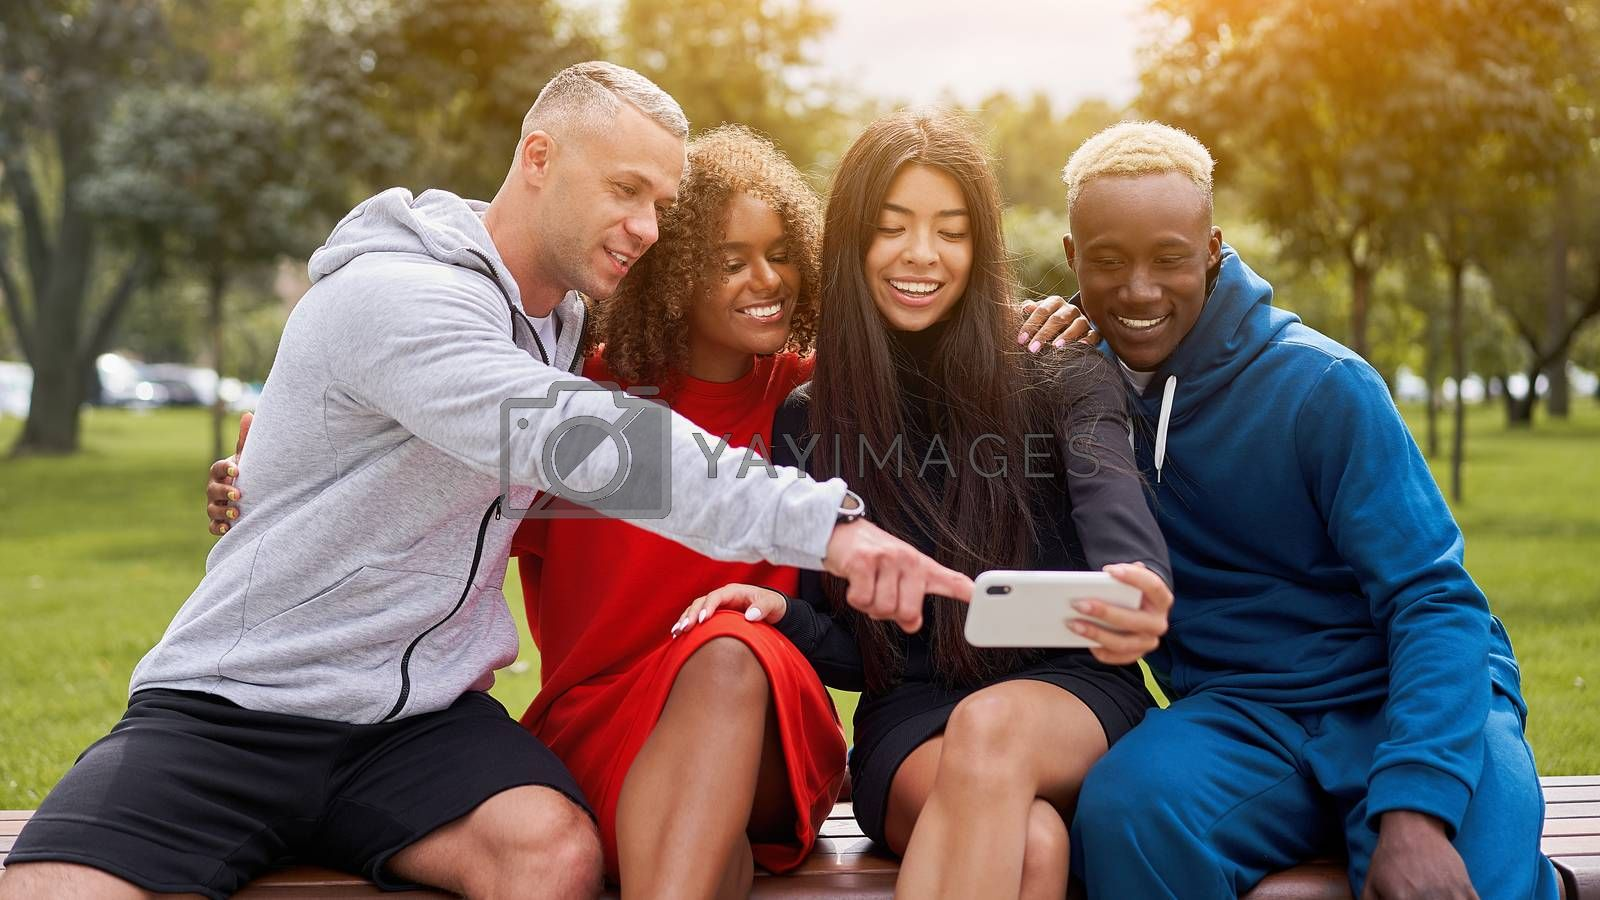 Multi ethnic friends outdoor looking smartphone screen. Diverse group people Afro american asian caucasian spending time together Multiracial male female student sitting bench park outdoors